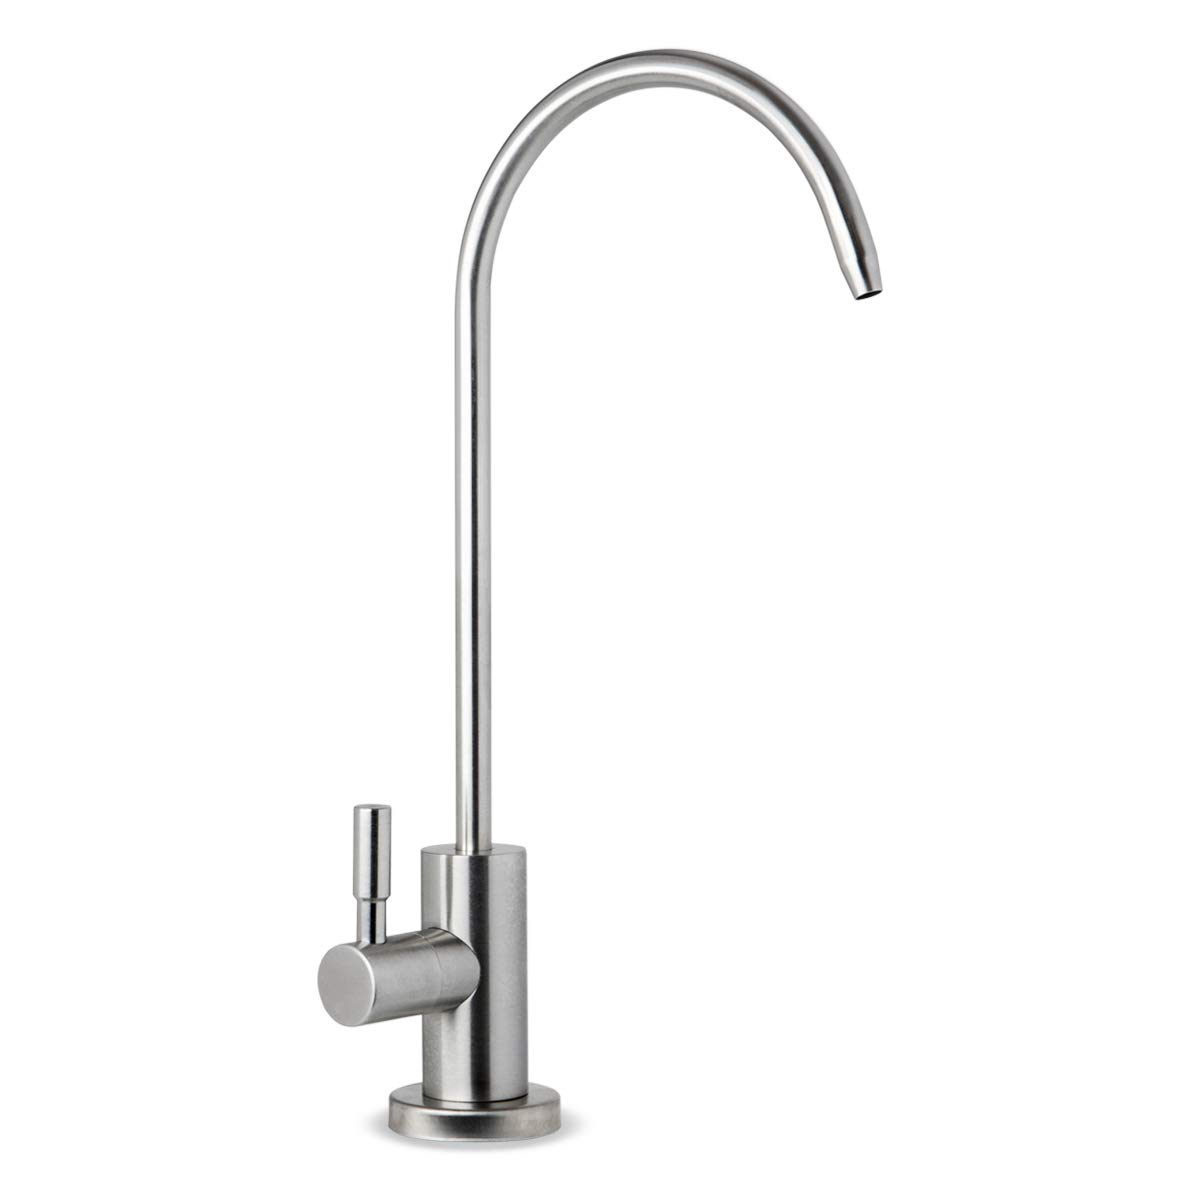 iSpring GA1-SS Stainless Steel Kitchen Bar Sink Reverse Osmosis RO Filtration Drinking Water Faucet, Lead-Free in Brushed Nickel Finish